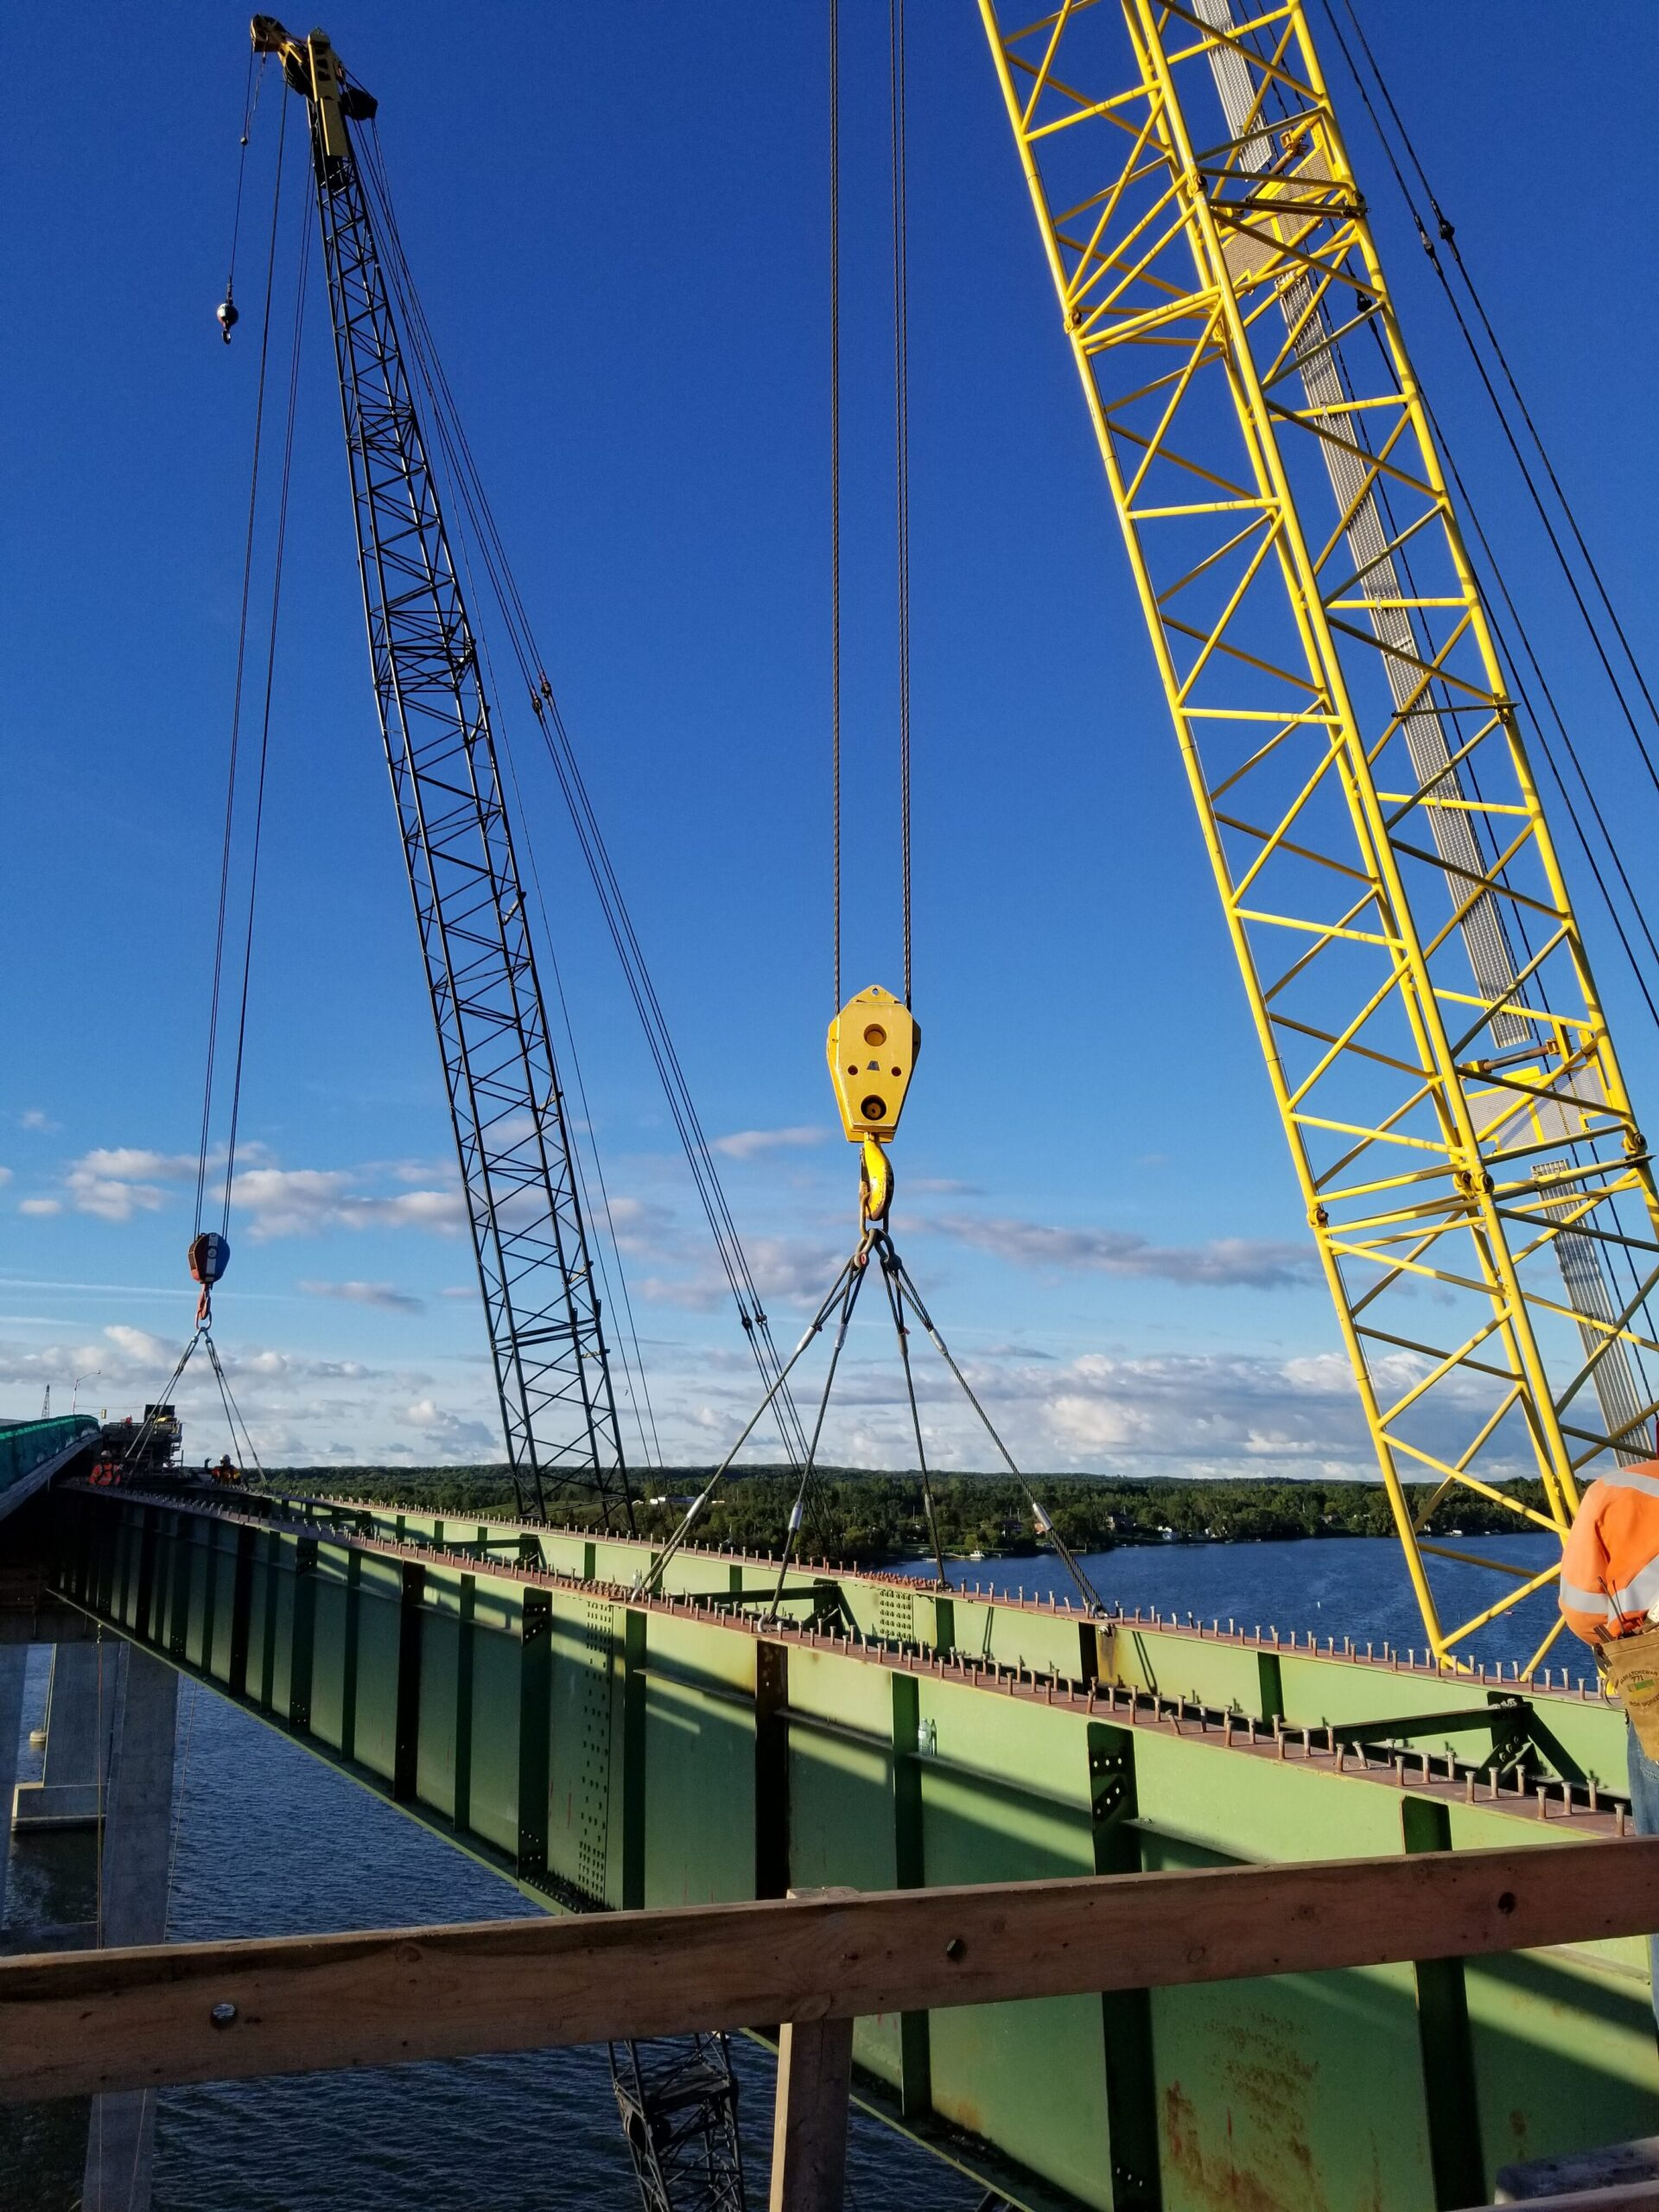 Swinging the second approach girder to be lowered